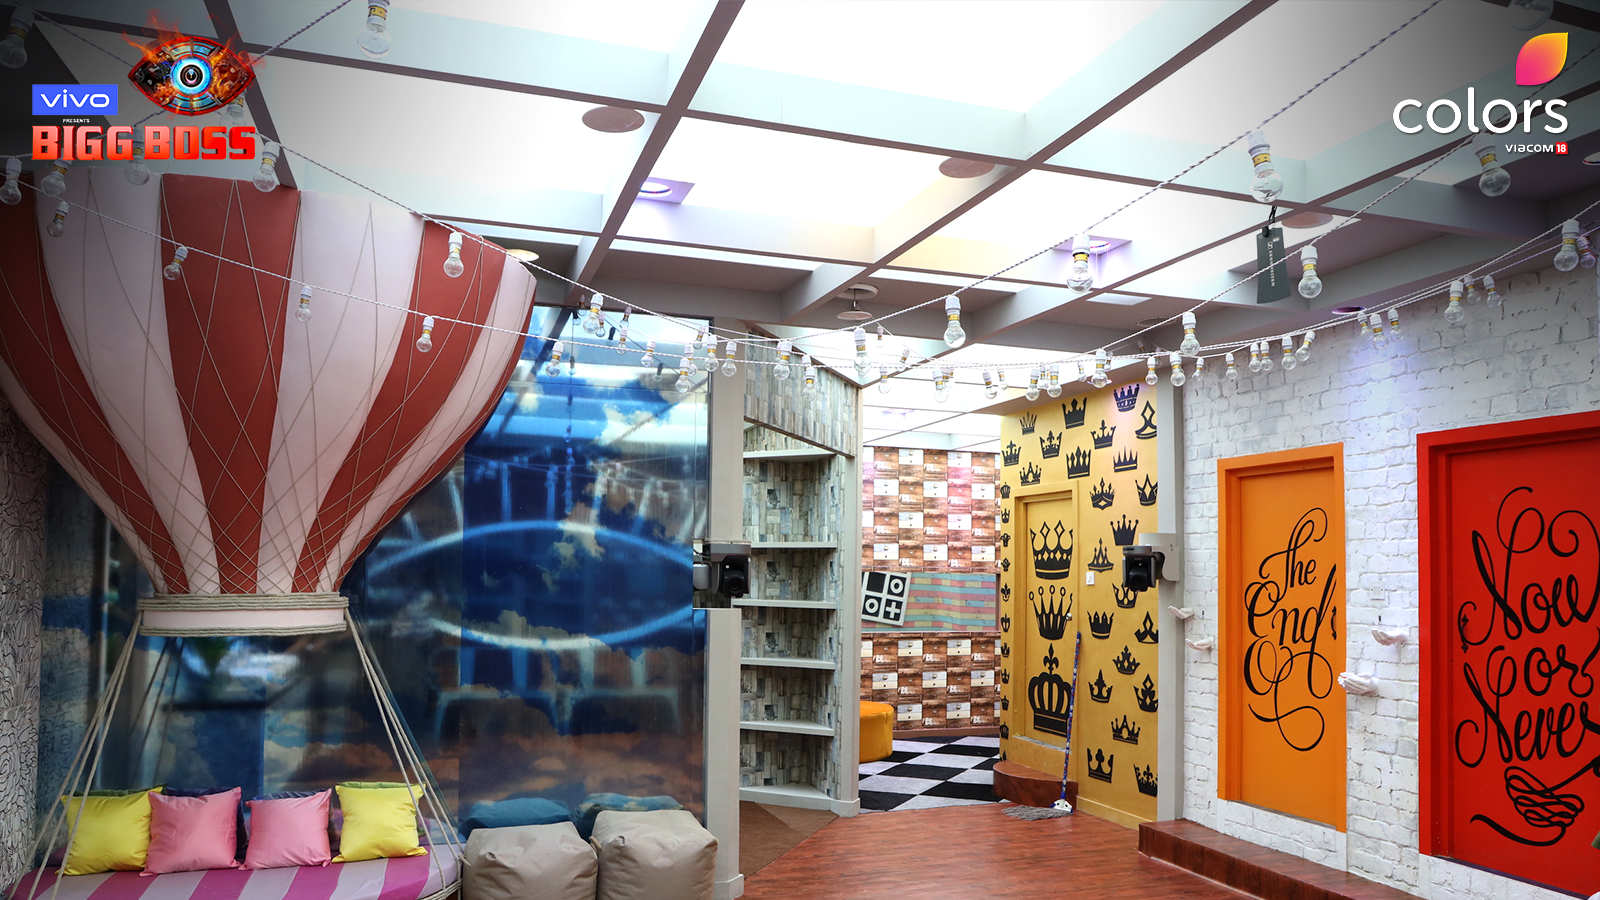 Time to step into the Bigg Boss 13 house!